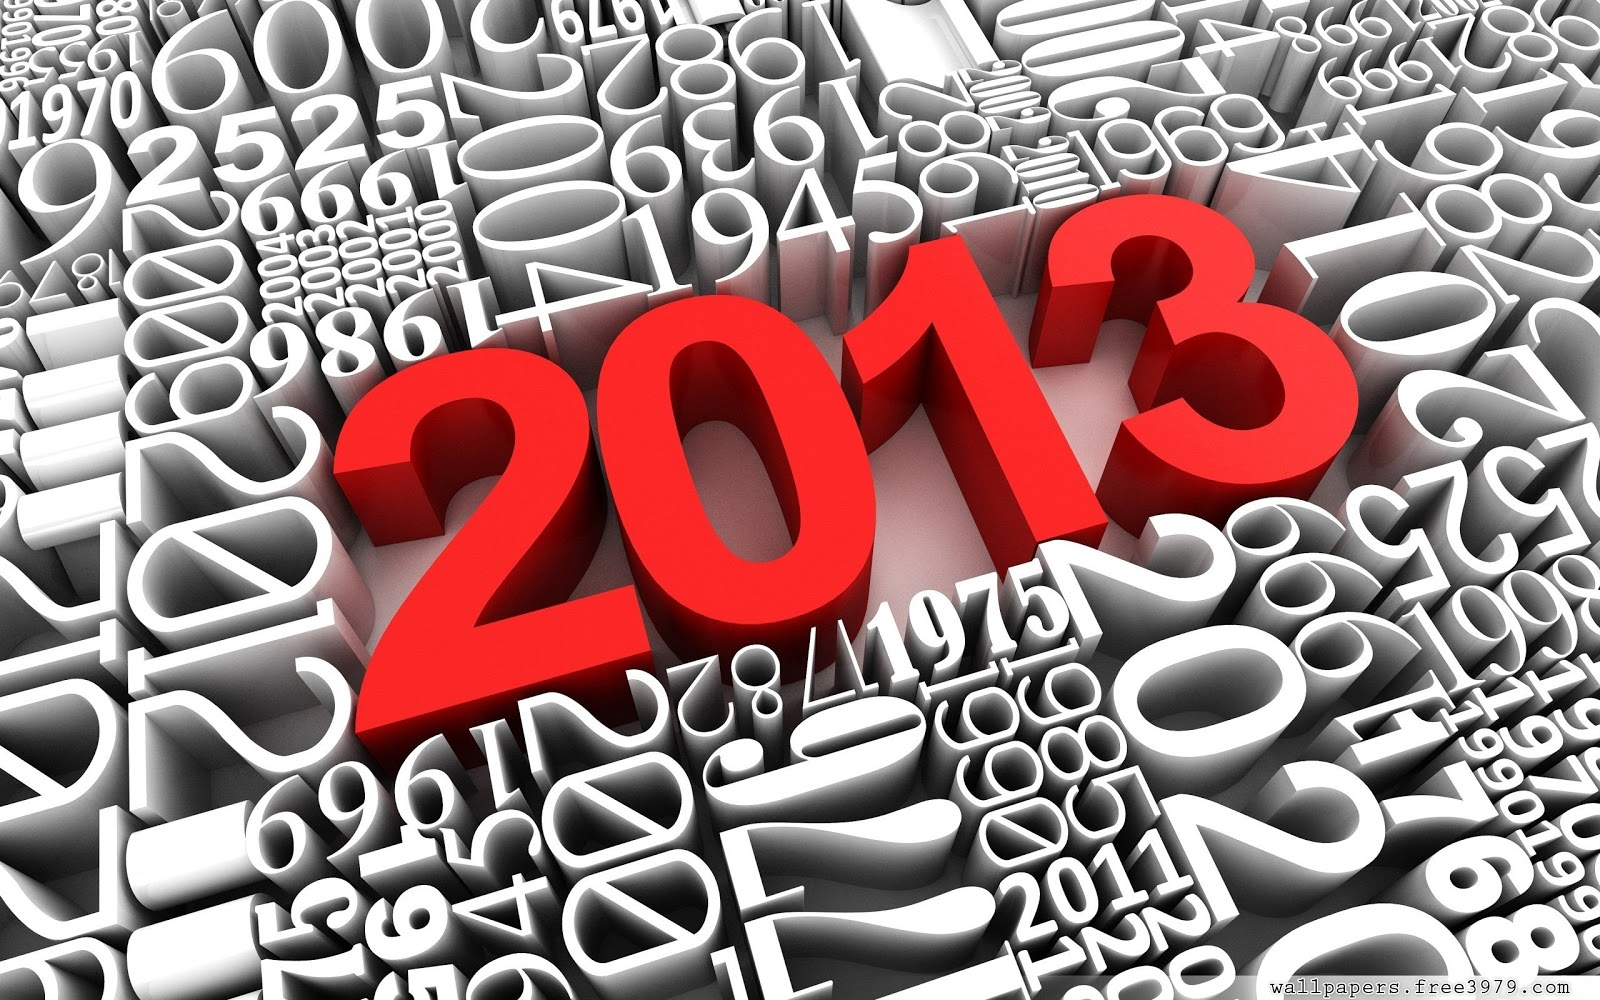 2013 3D Happy New Year Wallpaper HD